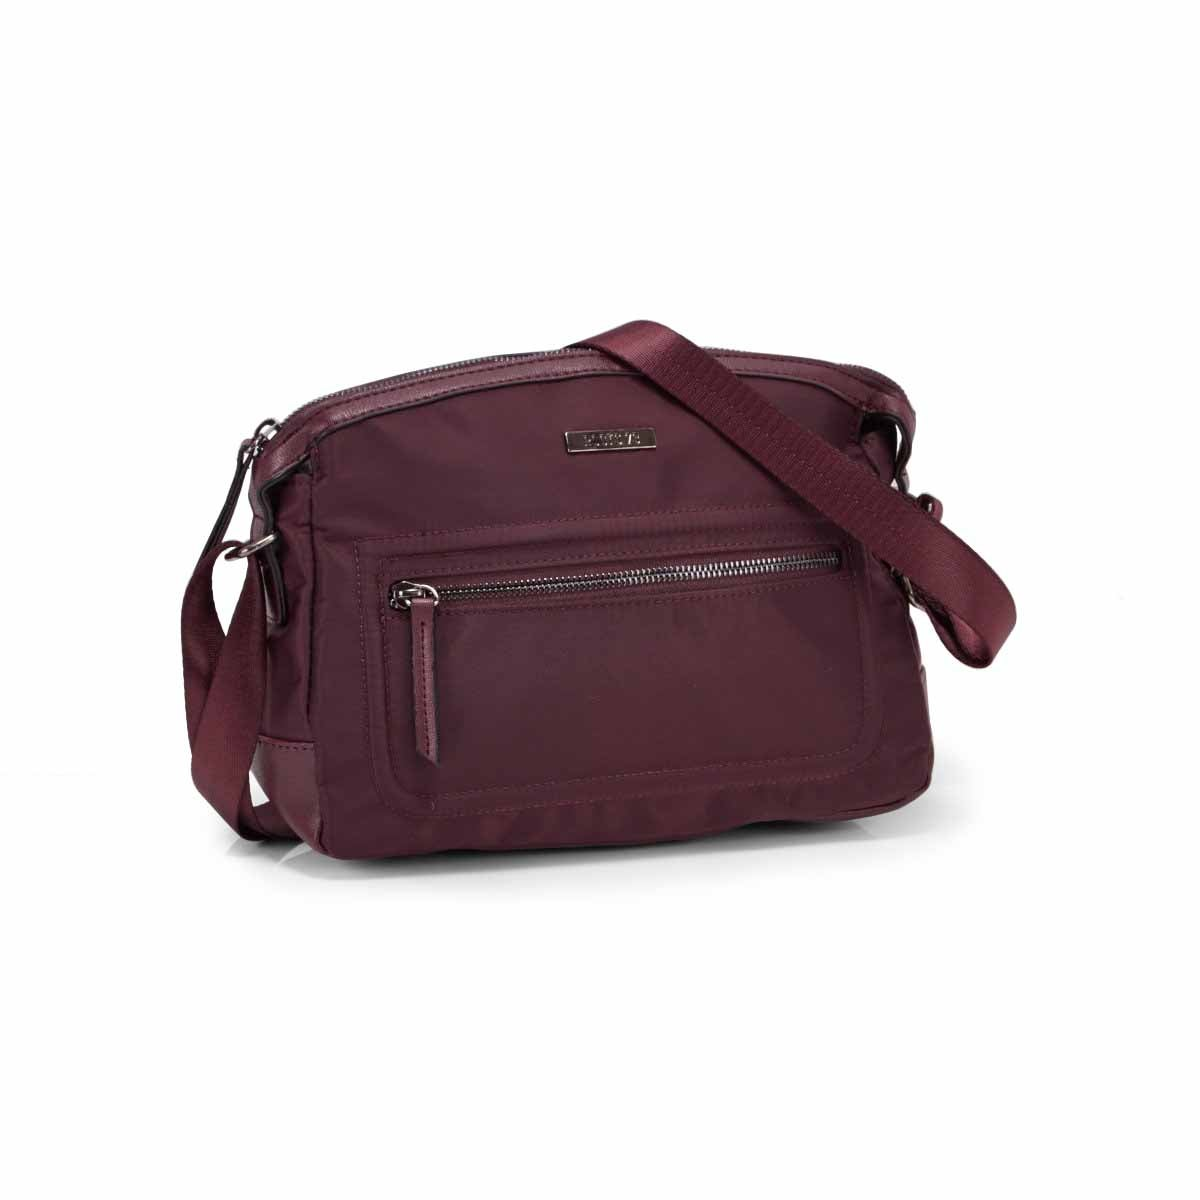 Lds Roots73 plum curved top crossbody